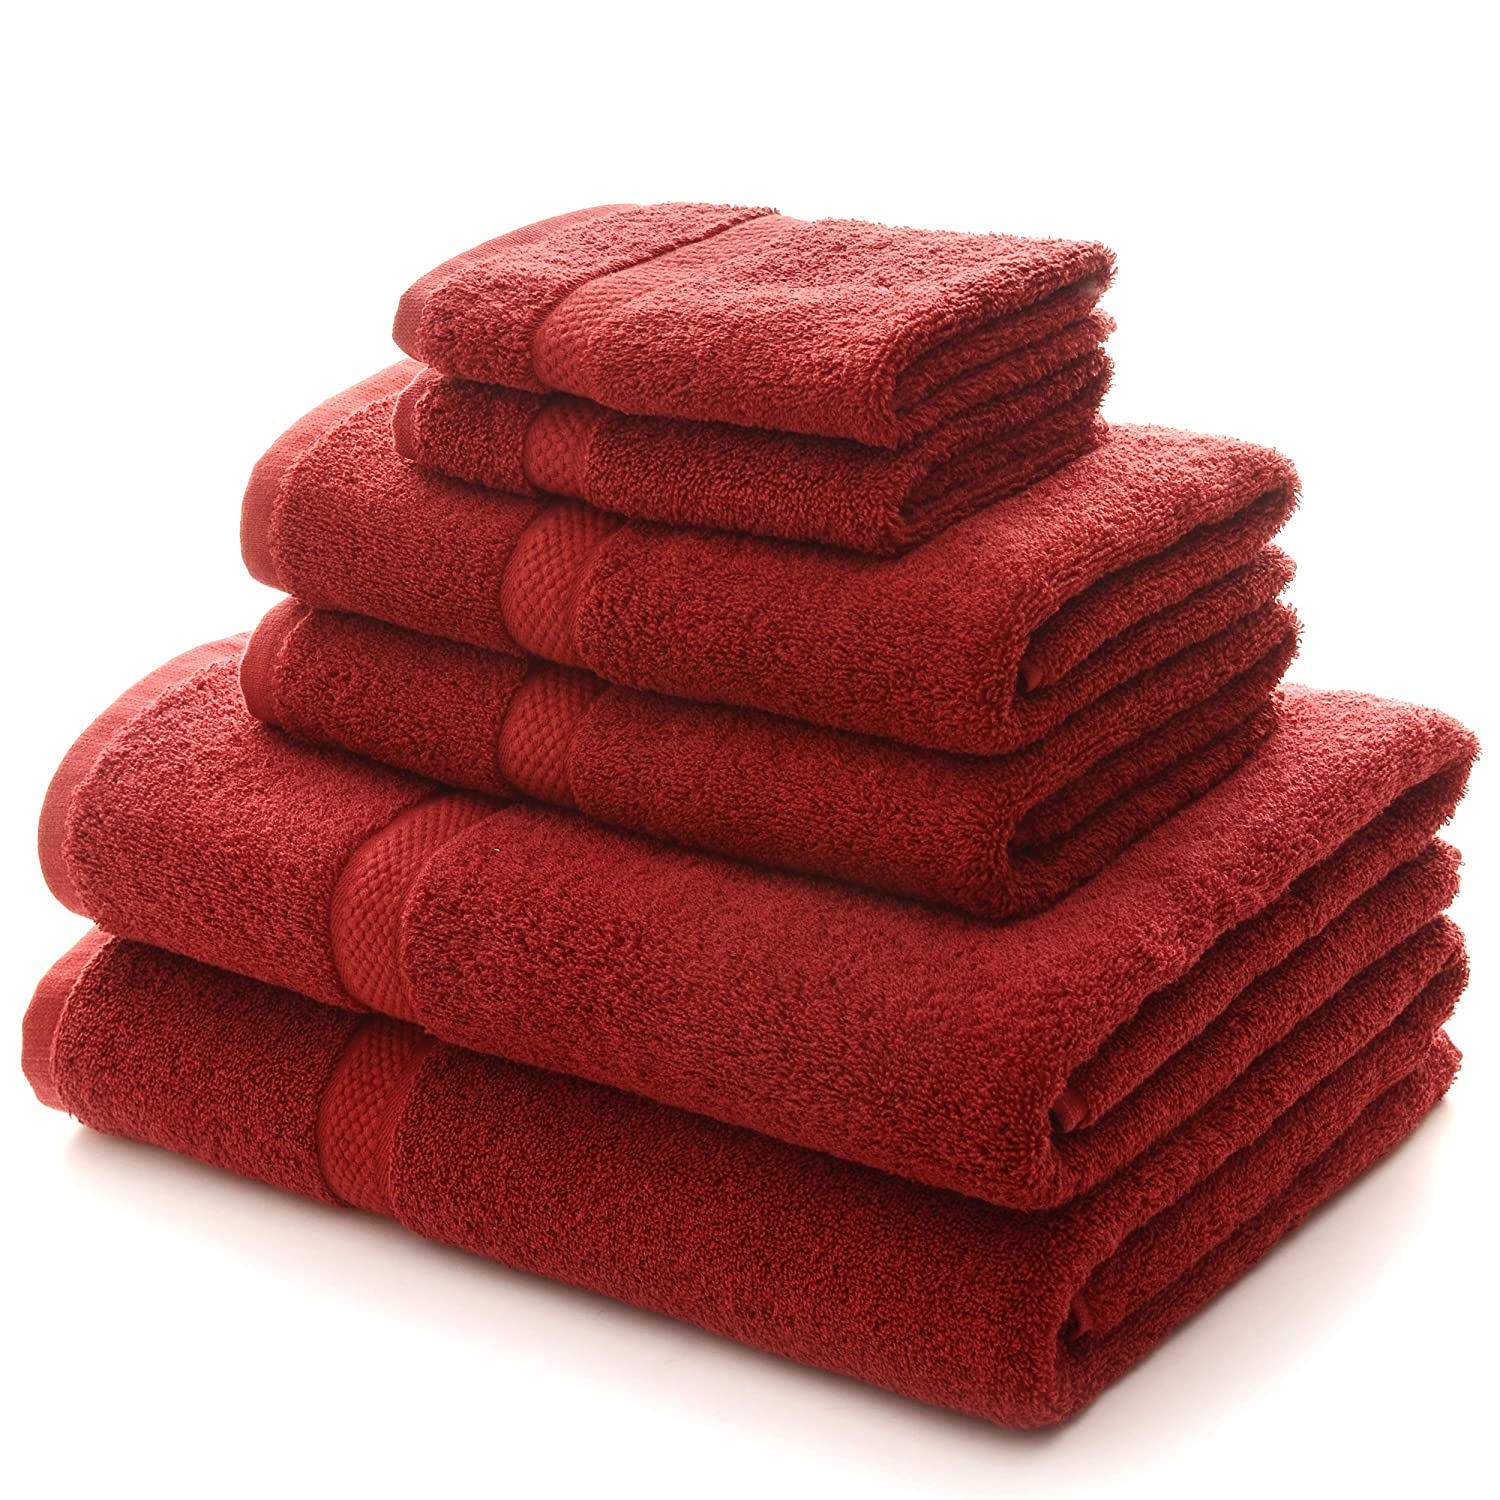 (Burgundy) - Cheer Collection 6 Piece Luxurious Towel Set - Solid Burgundy B00YFSTK6I バーガンディー